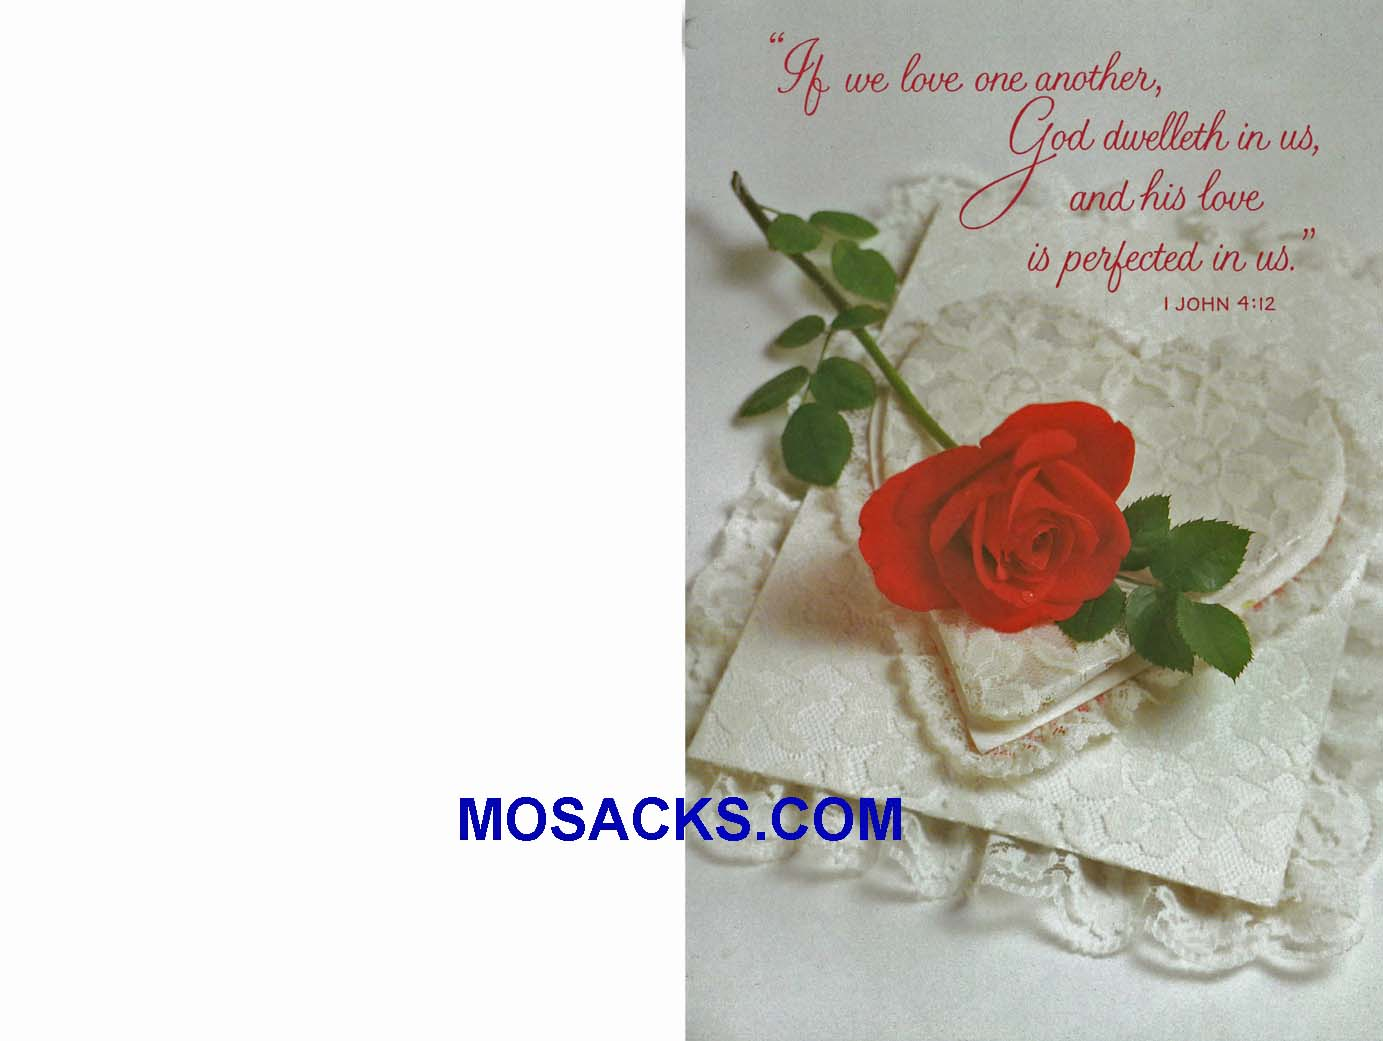 Wedding Bulletin Covers Love One Another 100 Pack-U6068, Wedding Cover